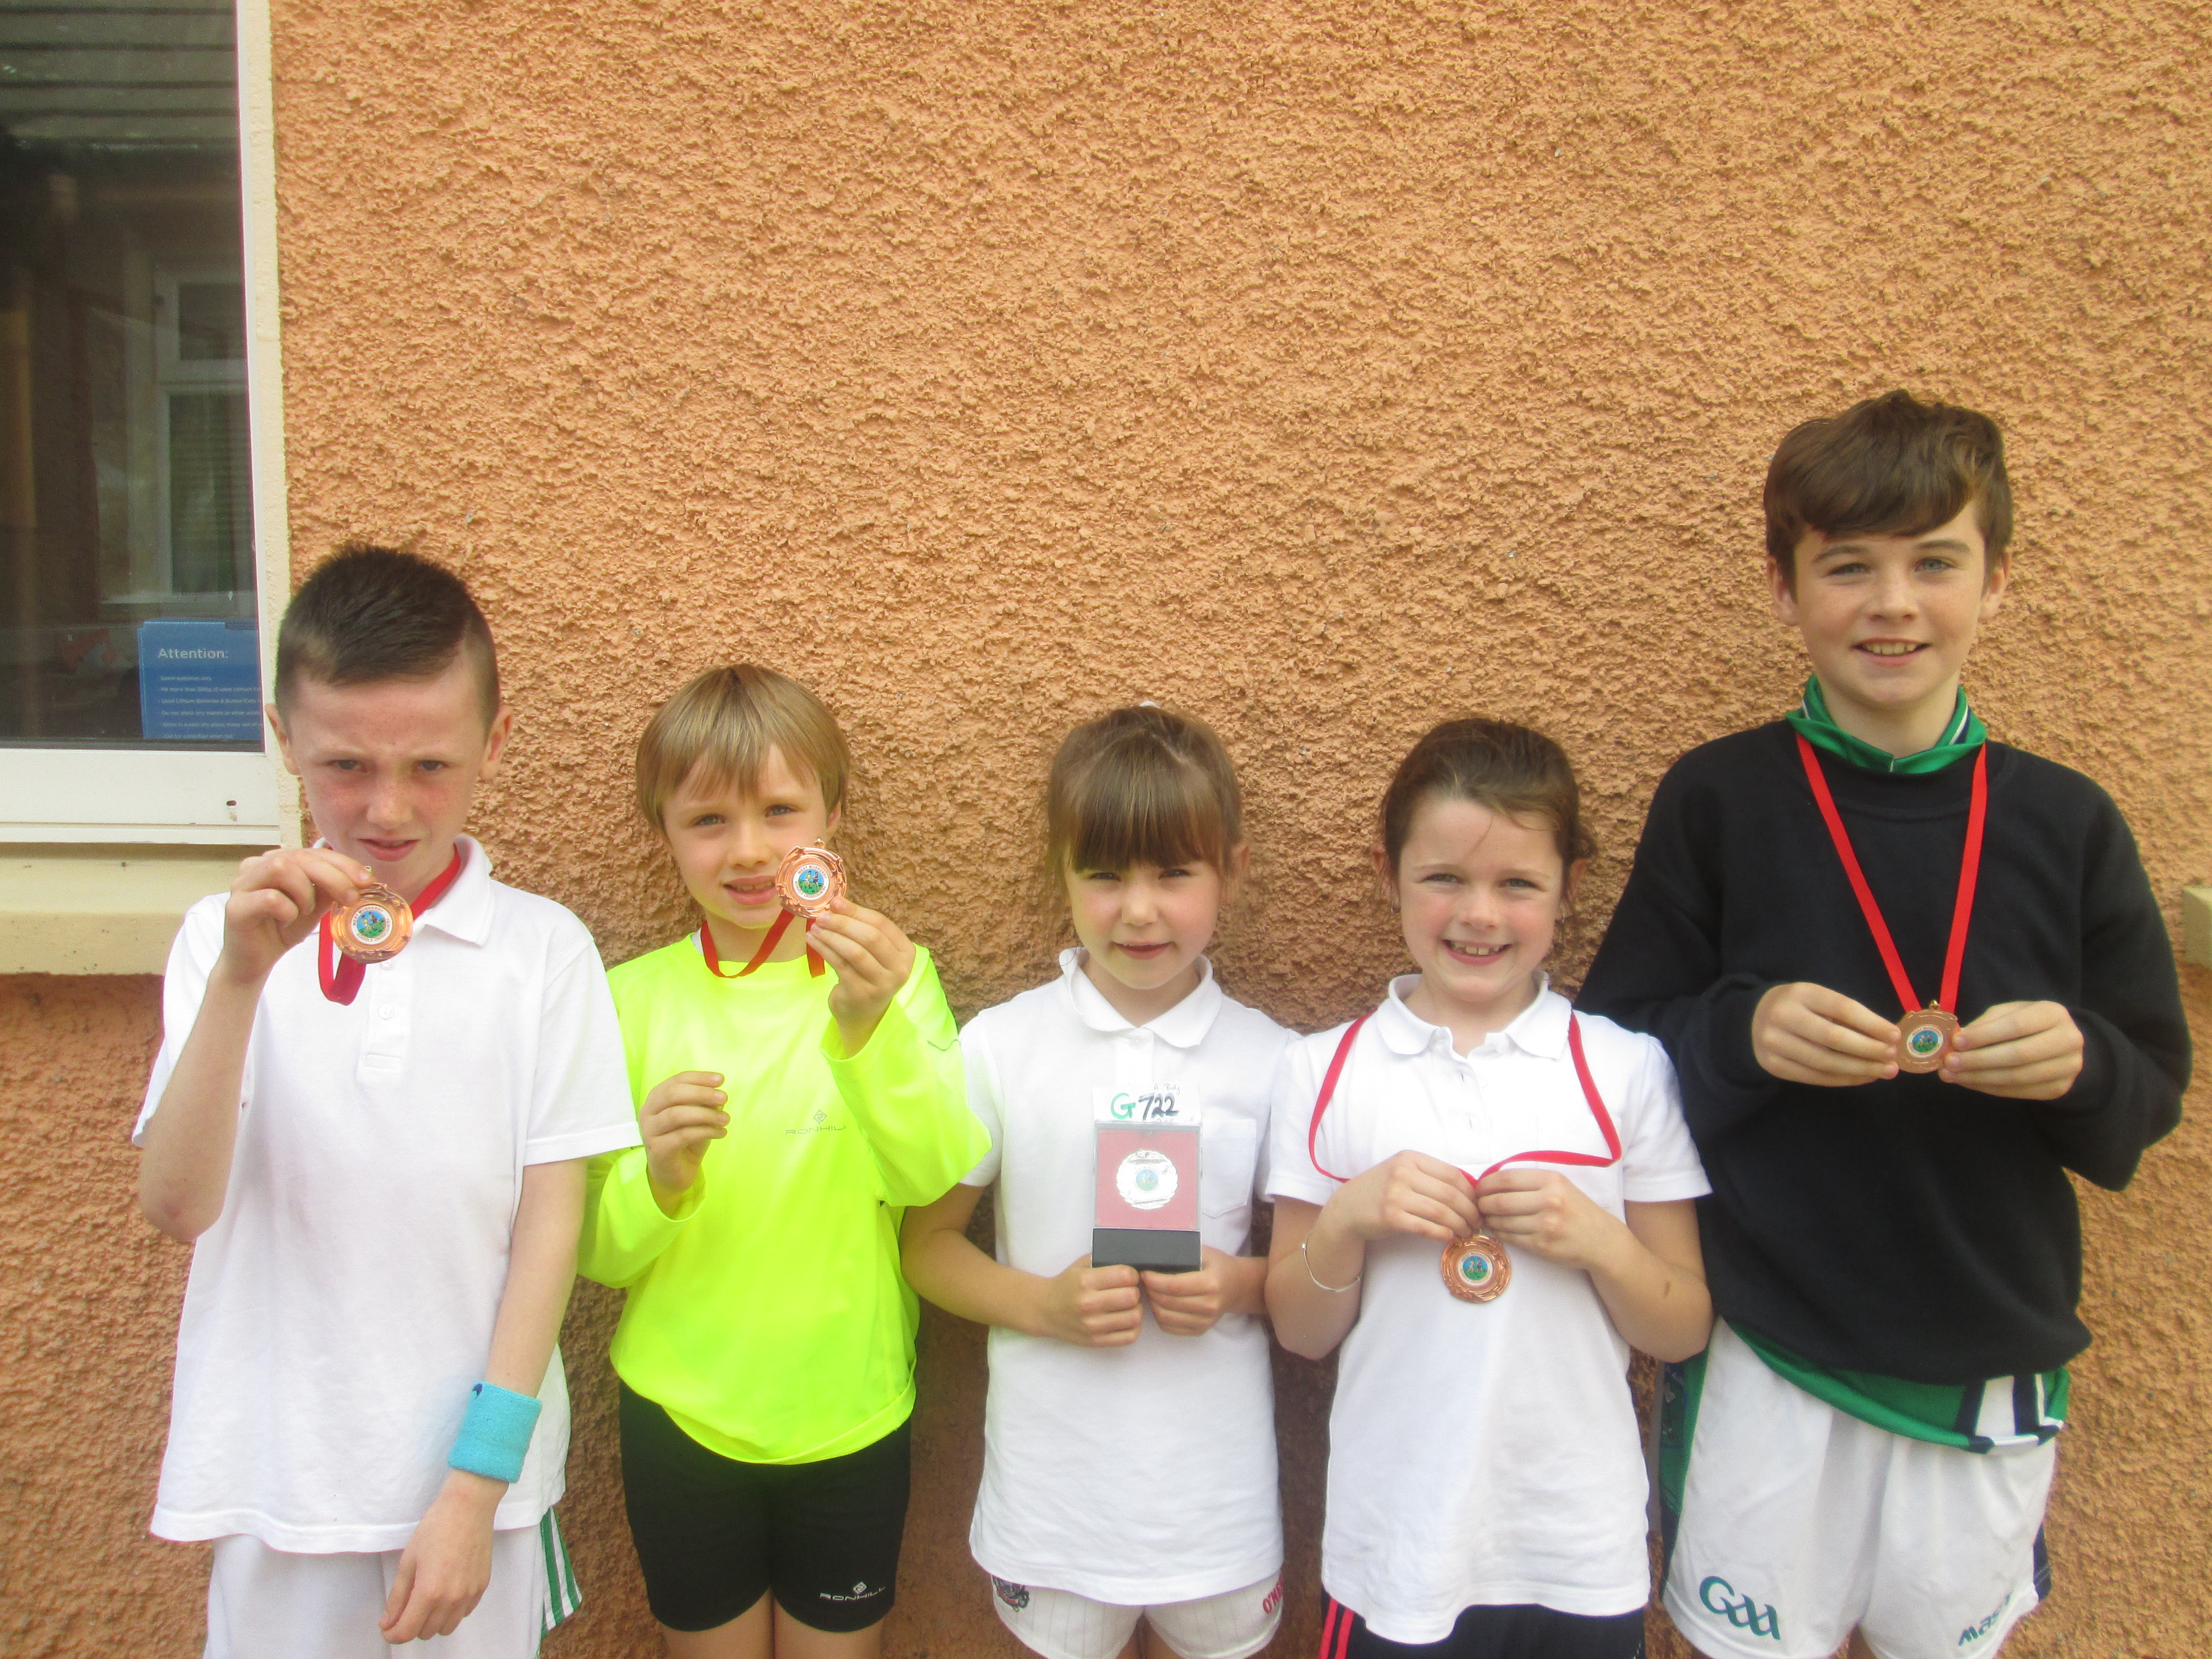 Medal winners from cross country run